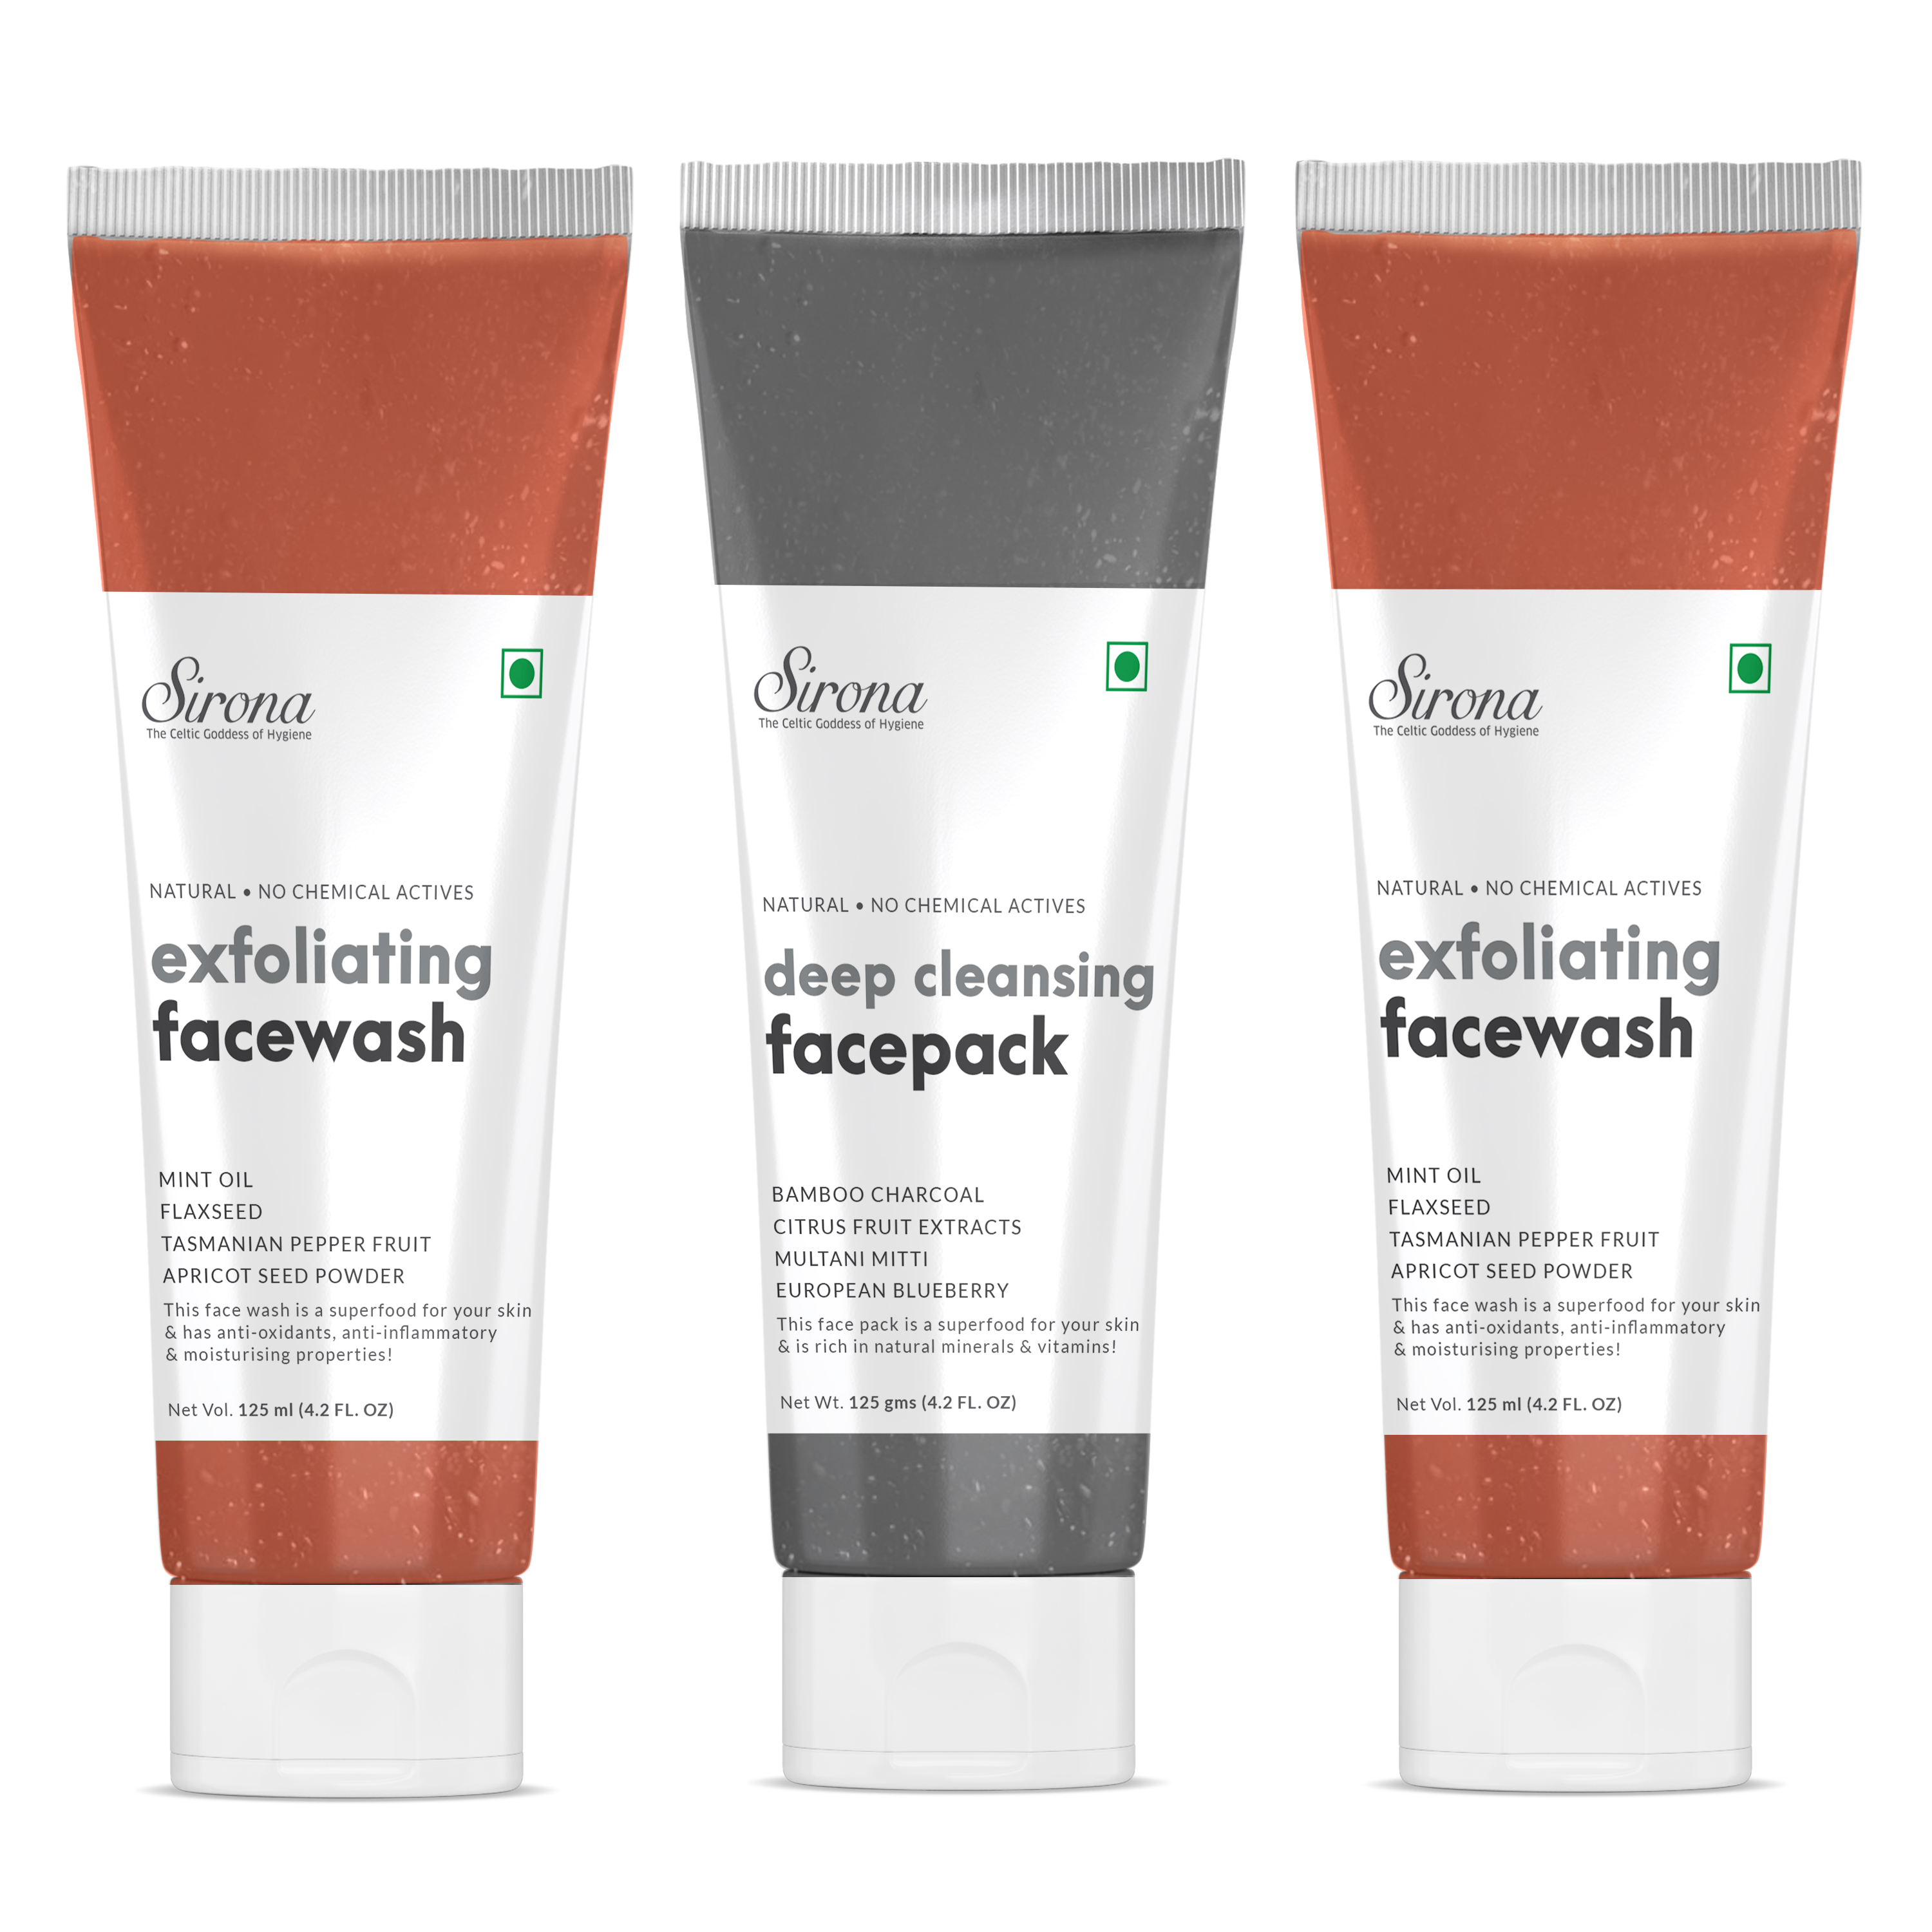 Sirona Natural Exfoliating Face Wash Facial Cleaner With Apricot & Flaxseed Extracts - 125 ml (Pack of 2) with free Natural Activated Bamboo Charcoal Deep Cleansing Face Pack - 125 gm